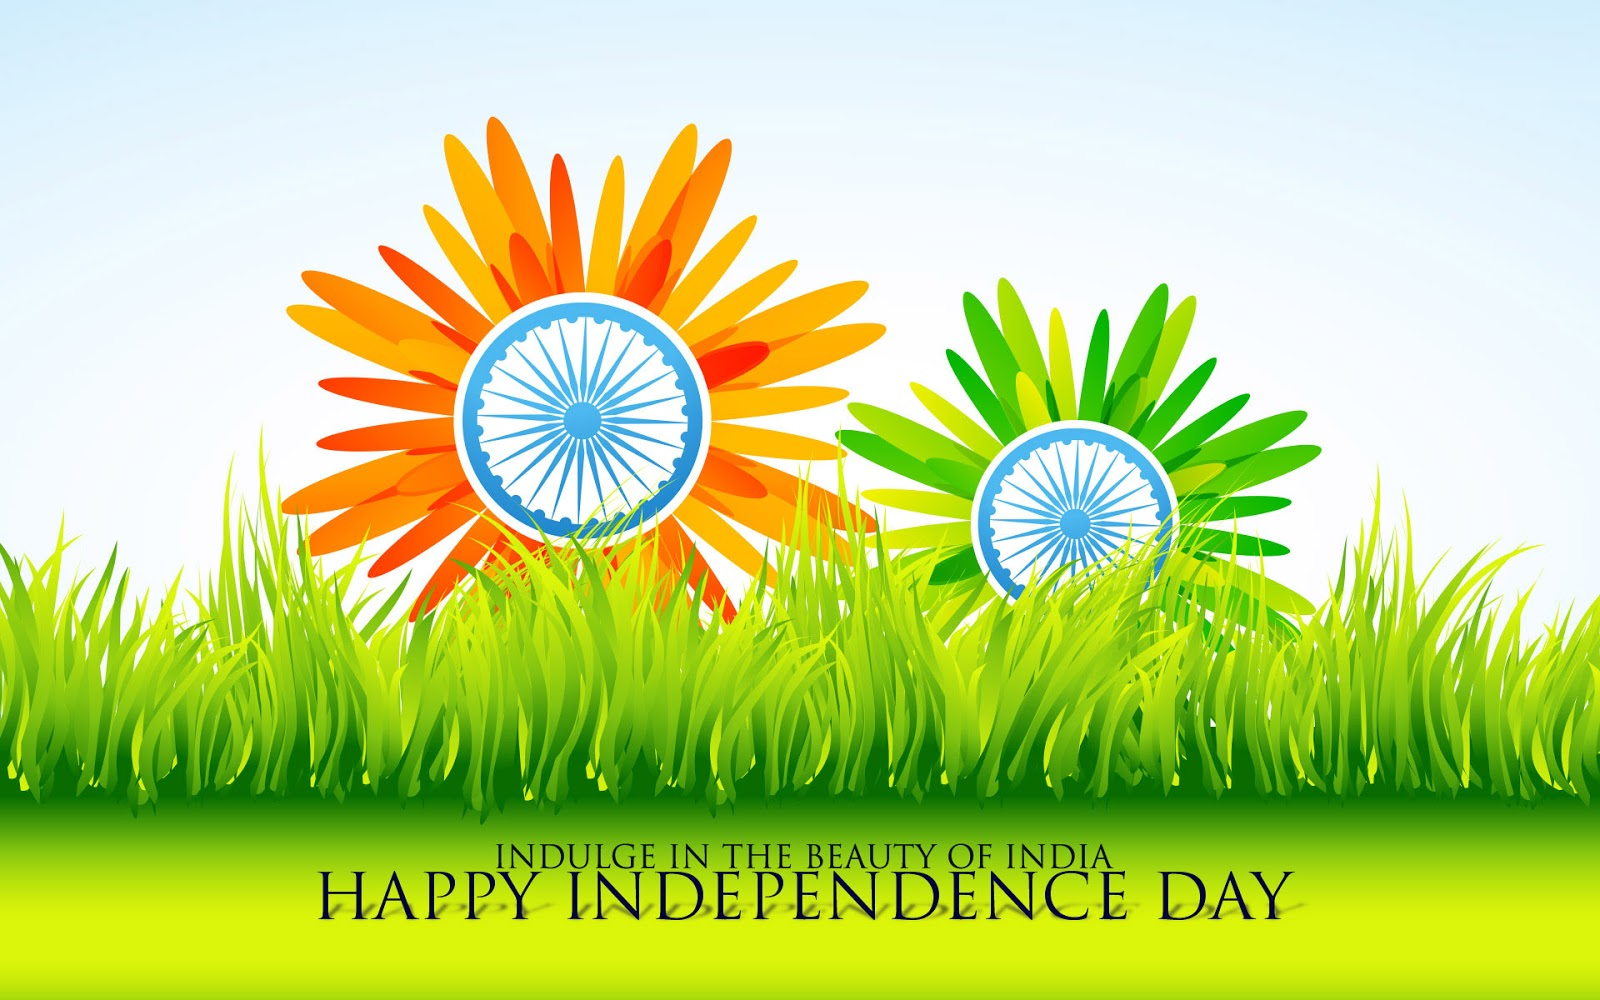 Some Best Independence Day Sms Messages Wallpaper And Quotesget